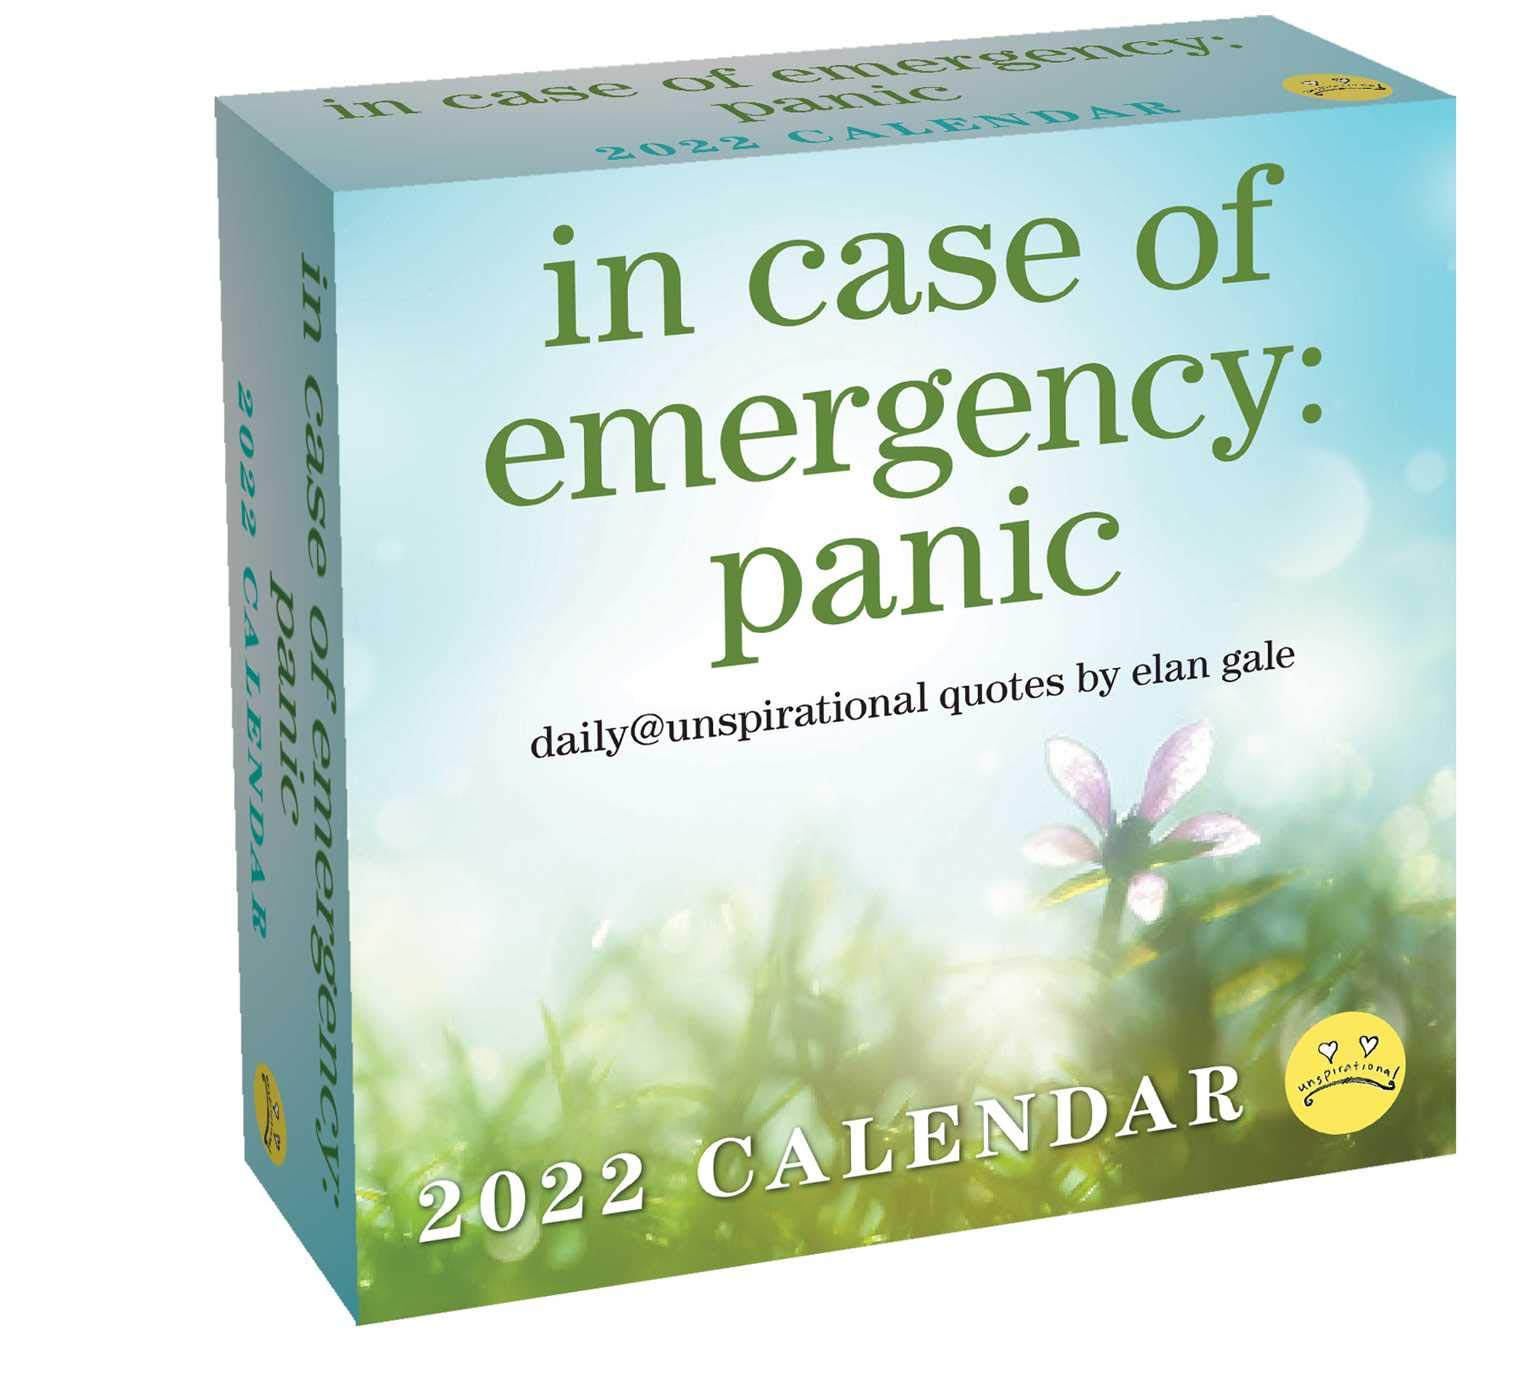 Daily Calendar 2022.Buy Unspirational 2022 Day To Day Calendar In Case Of Emergency Panic Book Online At Low Prices In India Unspirational 2022 Day To Day Calendar In Case Of Emergency Panic Reviews Ratings Amazon In